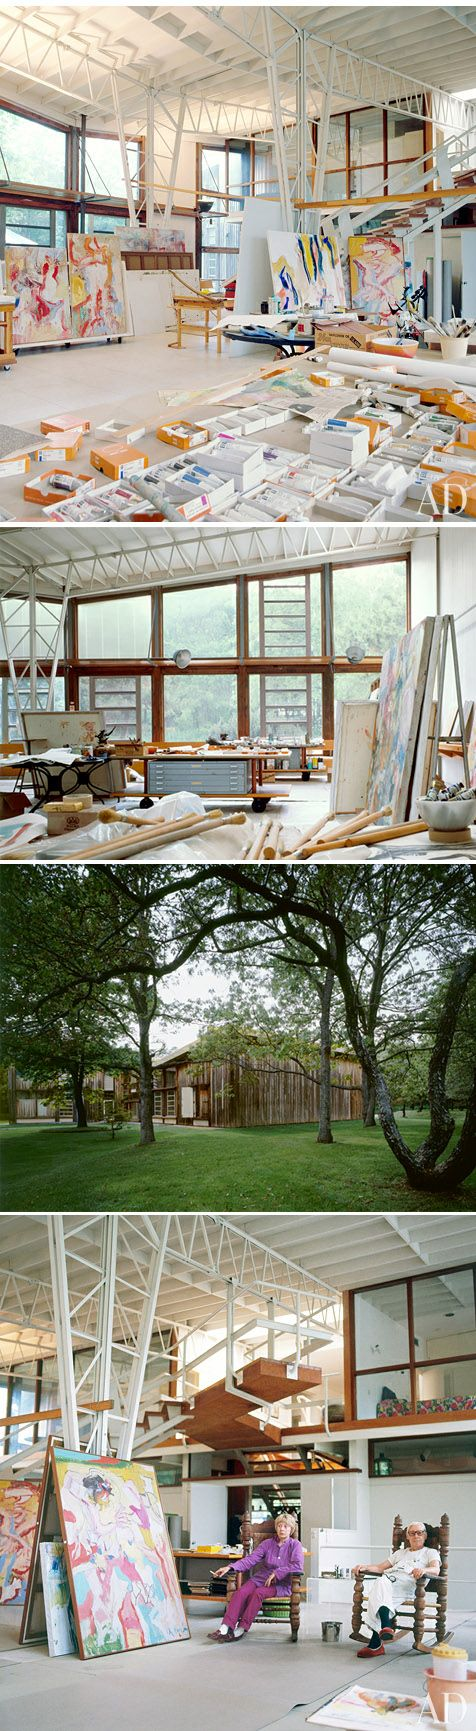 Willem de Kooning studio in East Hampton, Archetectual Digest, 1983